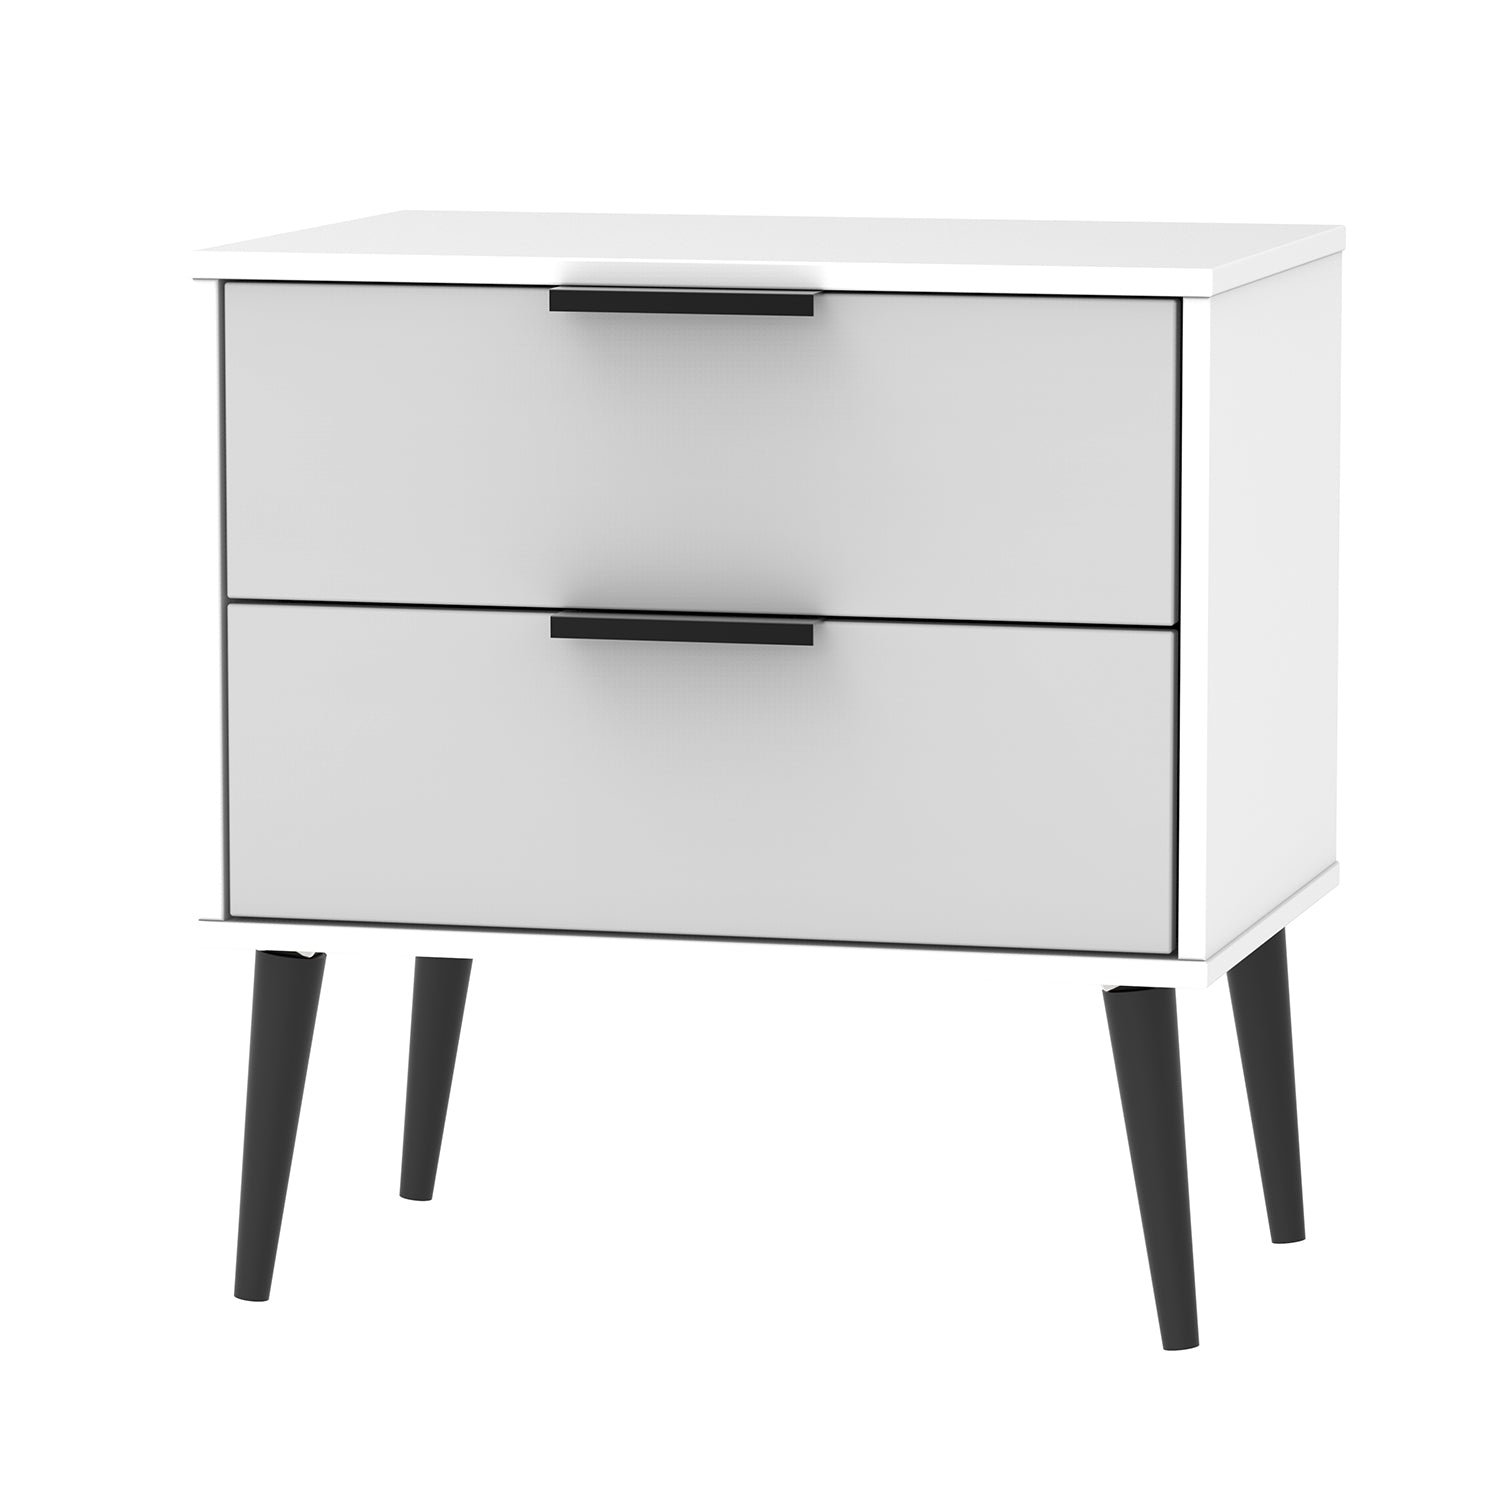 Grey Matt with White Base 2 Drawer Midi Chest with Wooden Legs